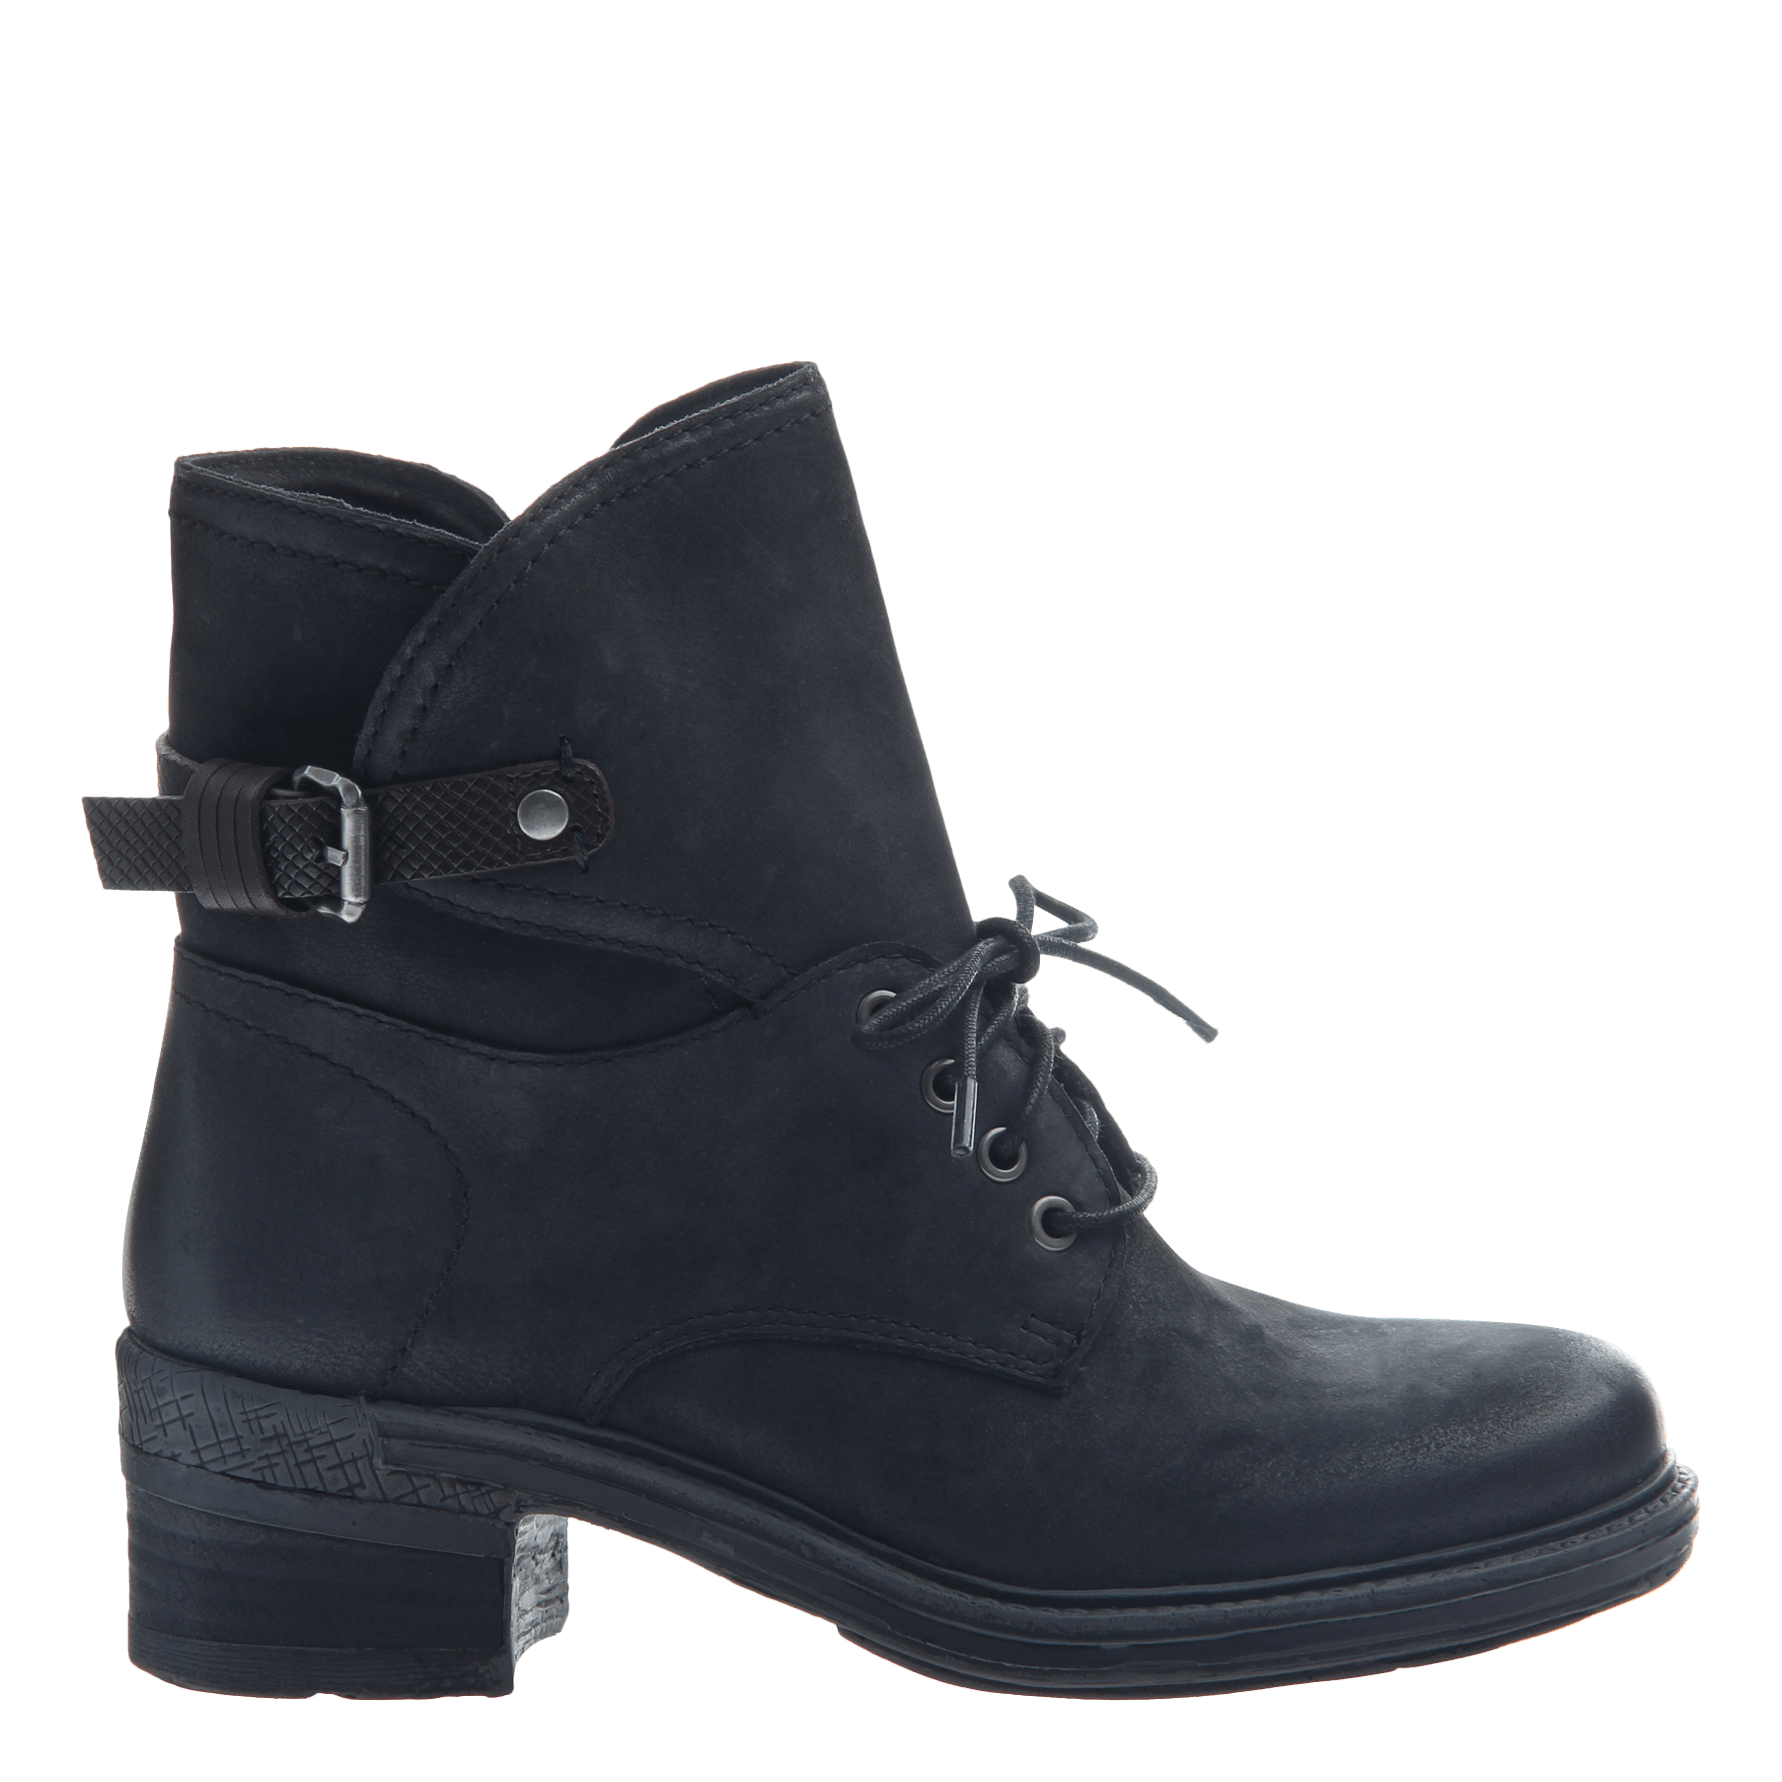 Gallivant Women's Boot